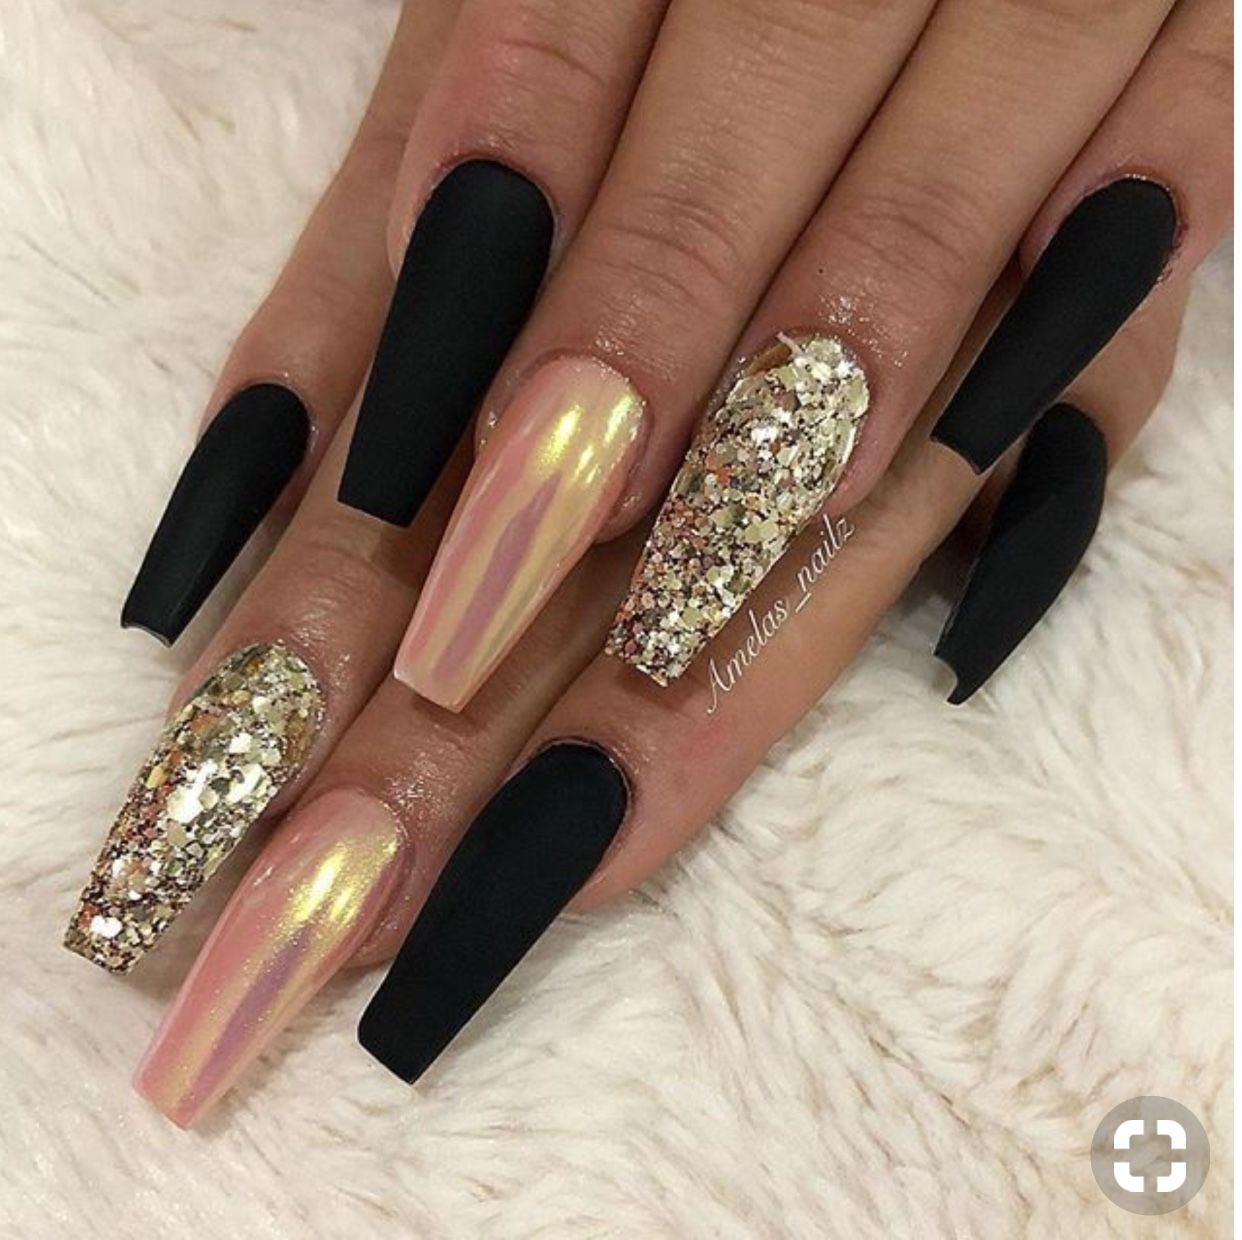 Pin By Elo Die On The Art Of Nails Coffin Nails Long Black Coffin Nails Chrome Nails